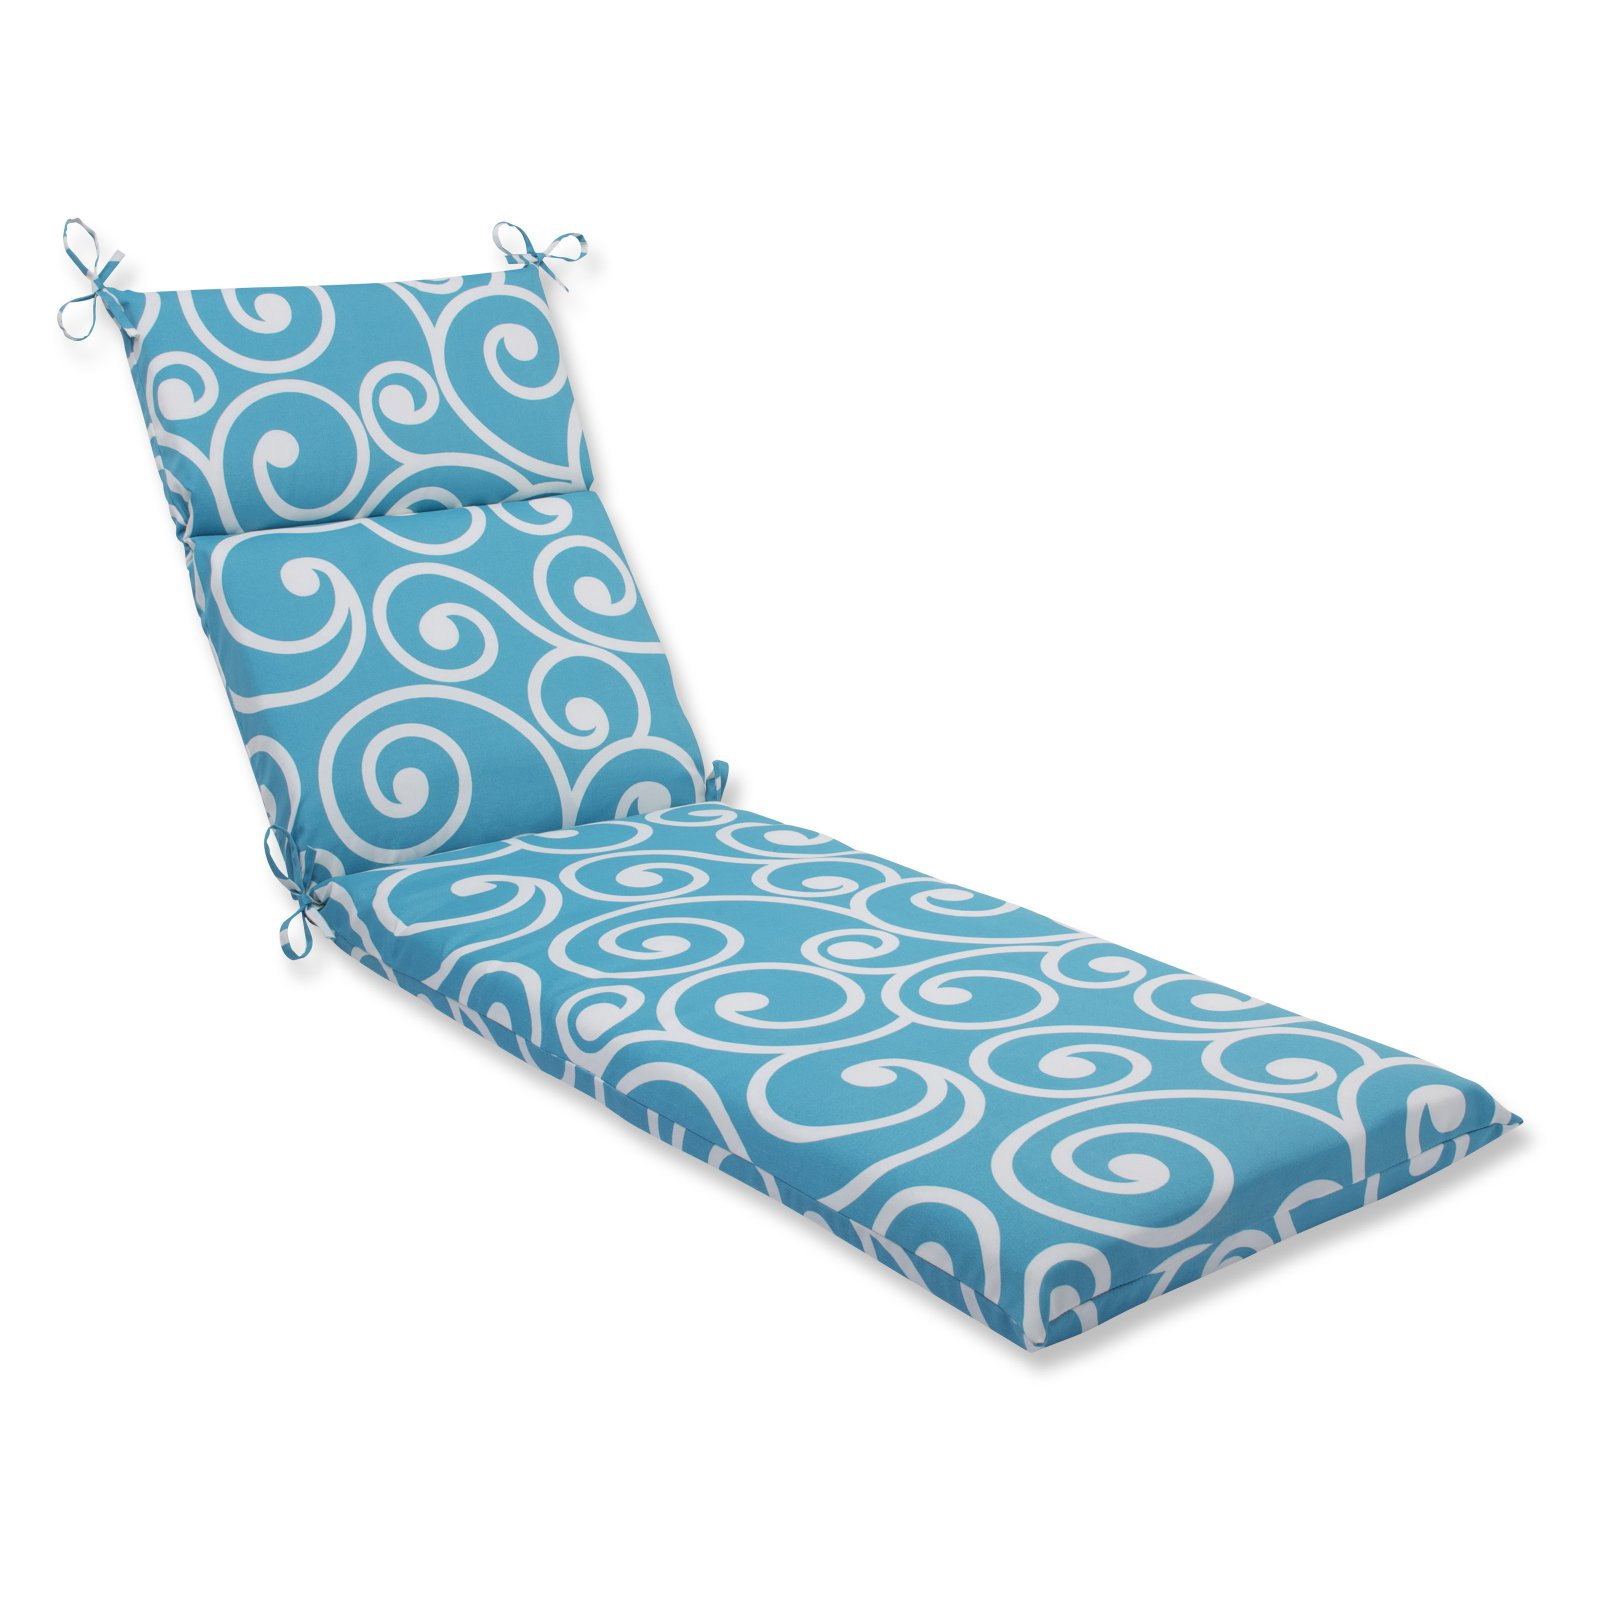 Pillow Perfect Outdoor/ Indoor Best Turquoise Chaise Lounge Cushion